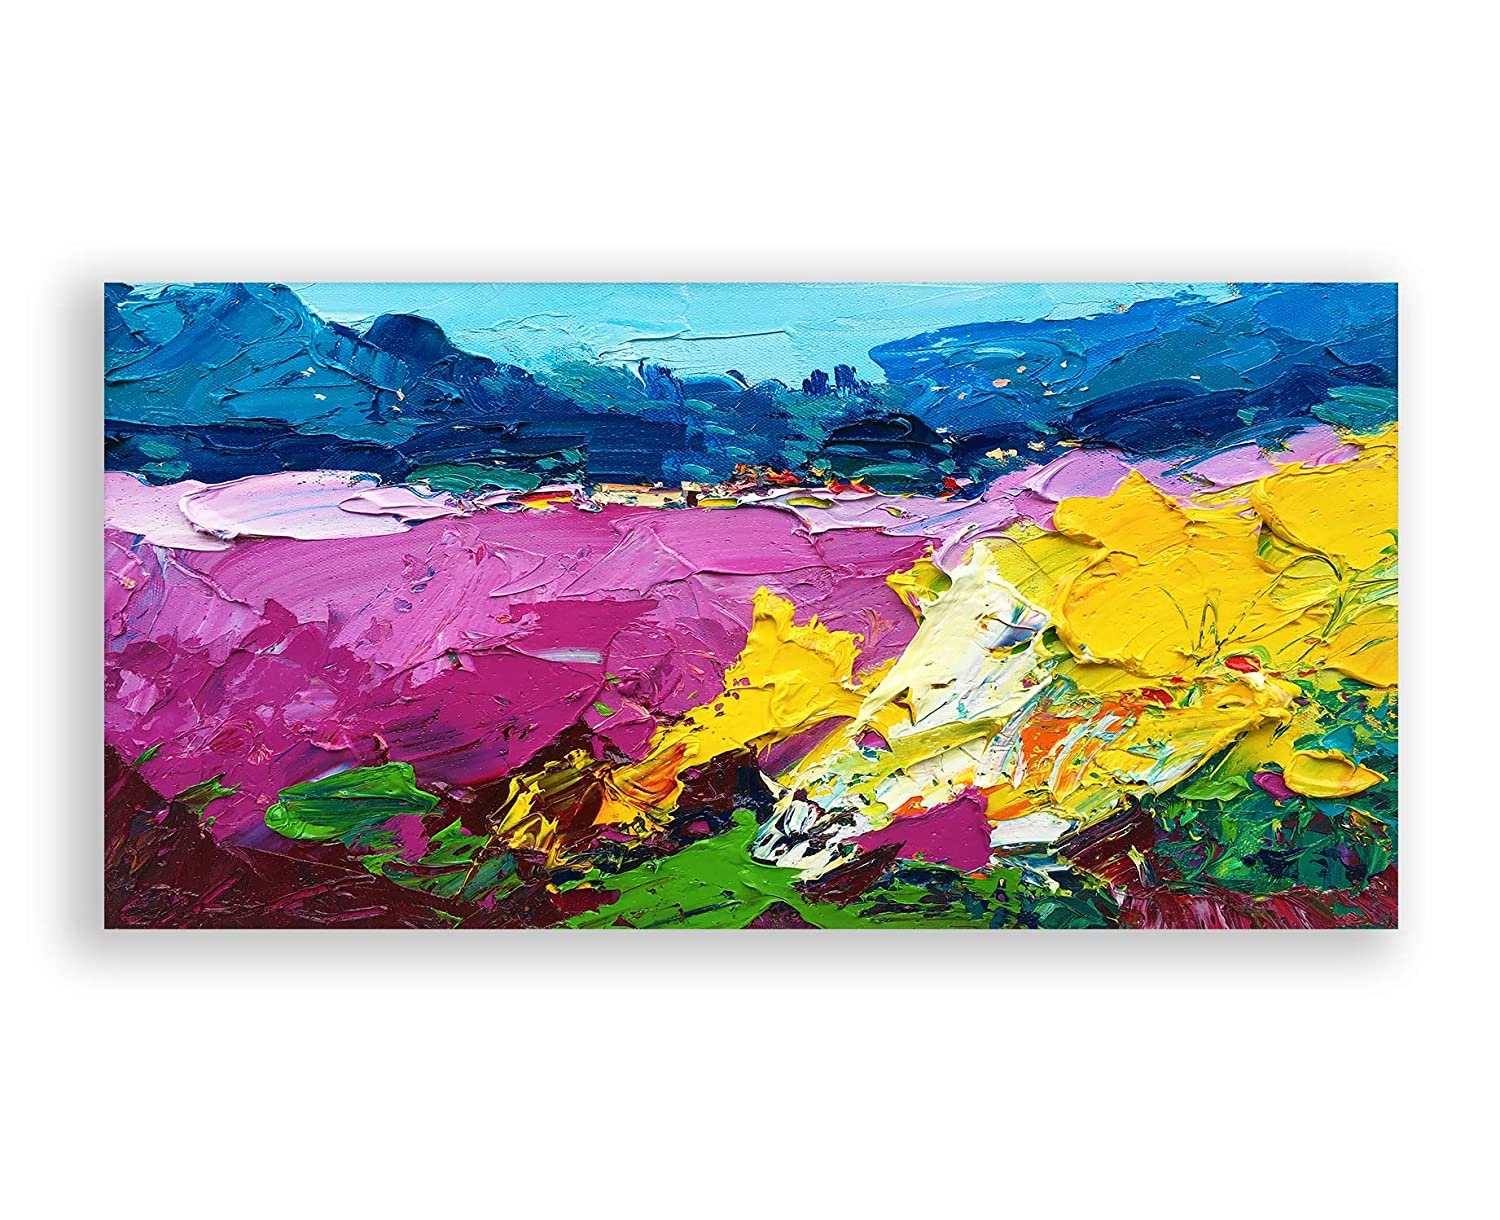 Abstract Painting on Canvas Original Popular brand in the world shipfree Art Landscape L